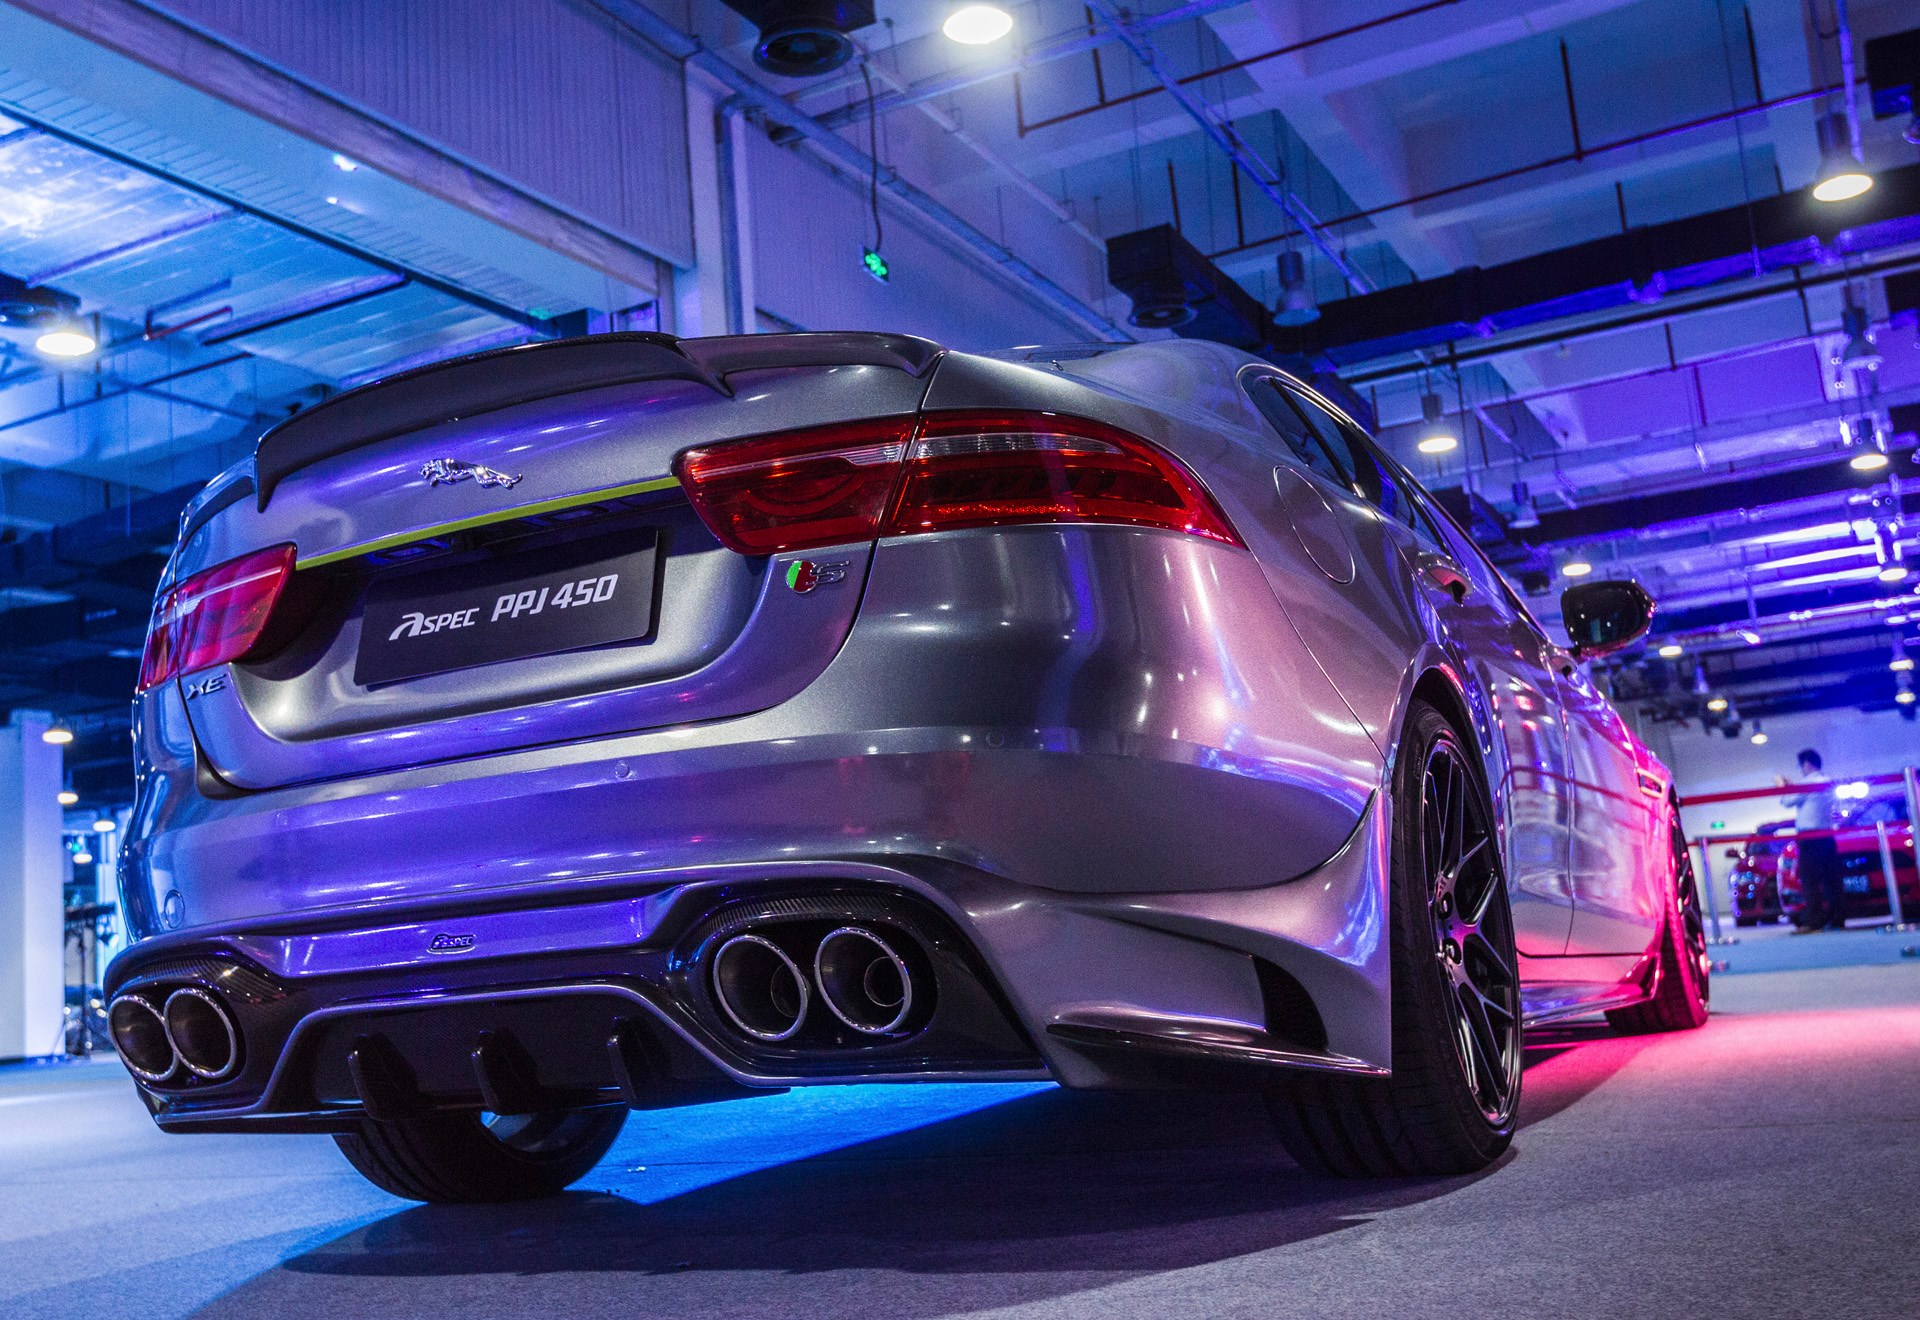 Jaguar XE Body Kit With Vented Hood Comes from China's Tuner